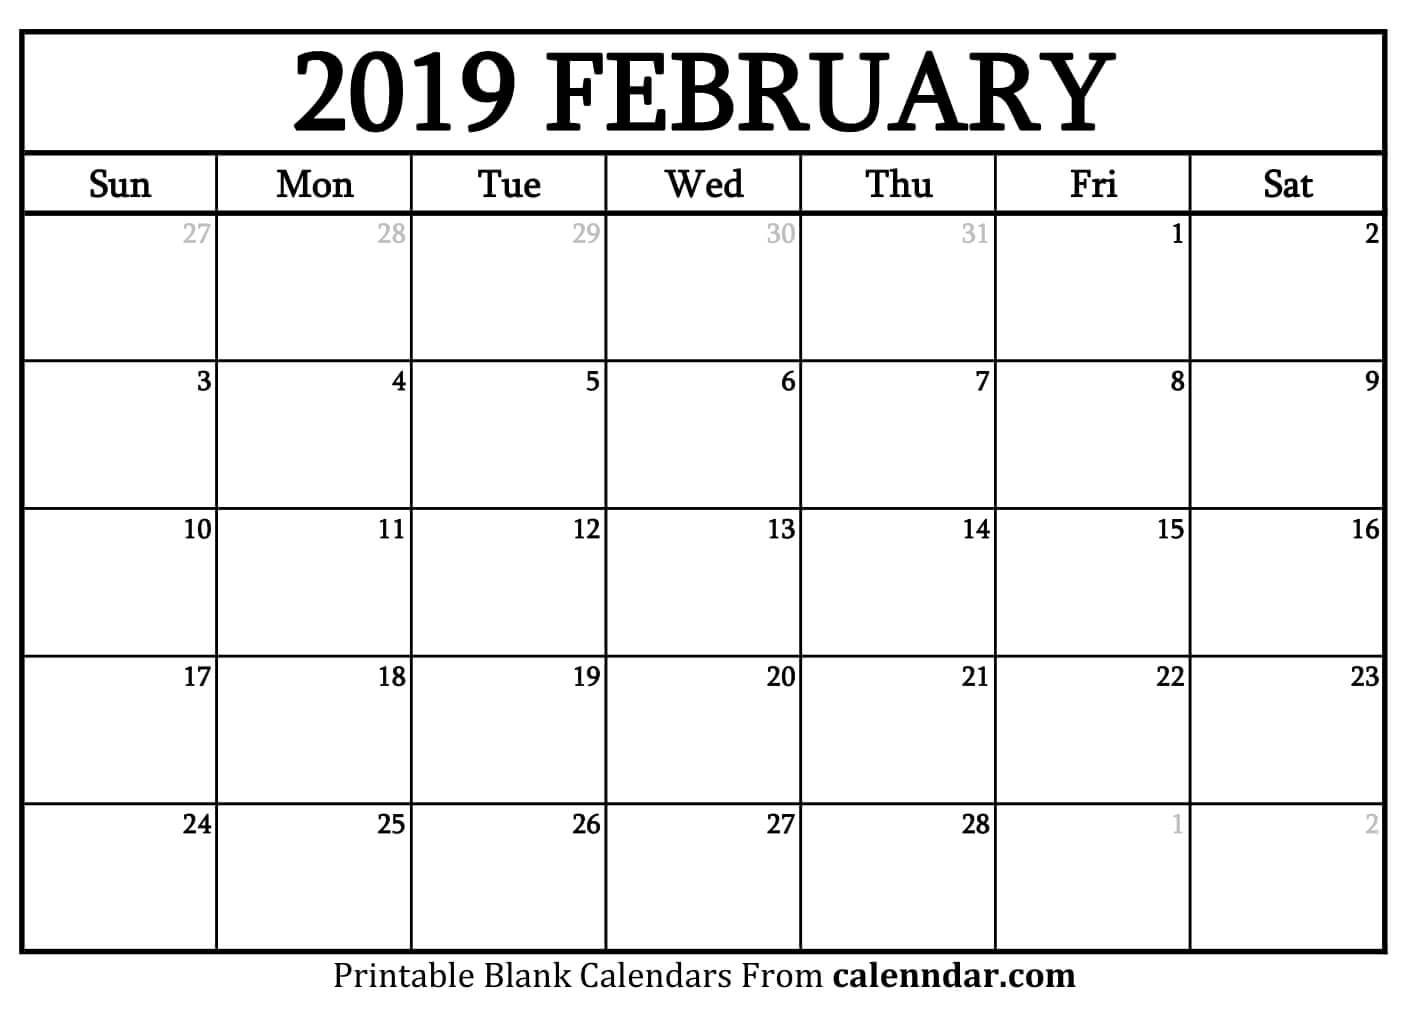 Blank February 2019 Calendar Templates - Calenndar Calendar 2019 February Printable